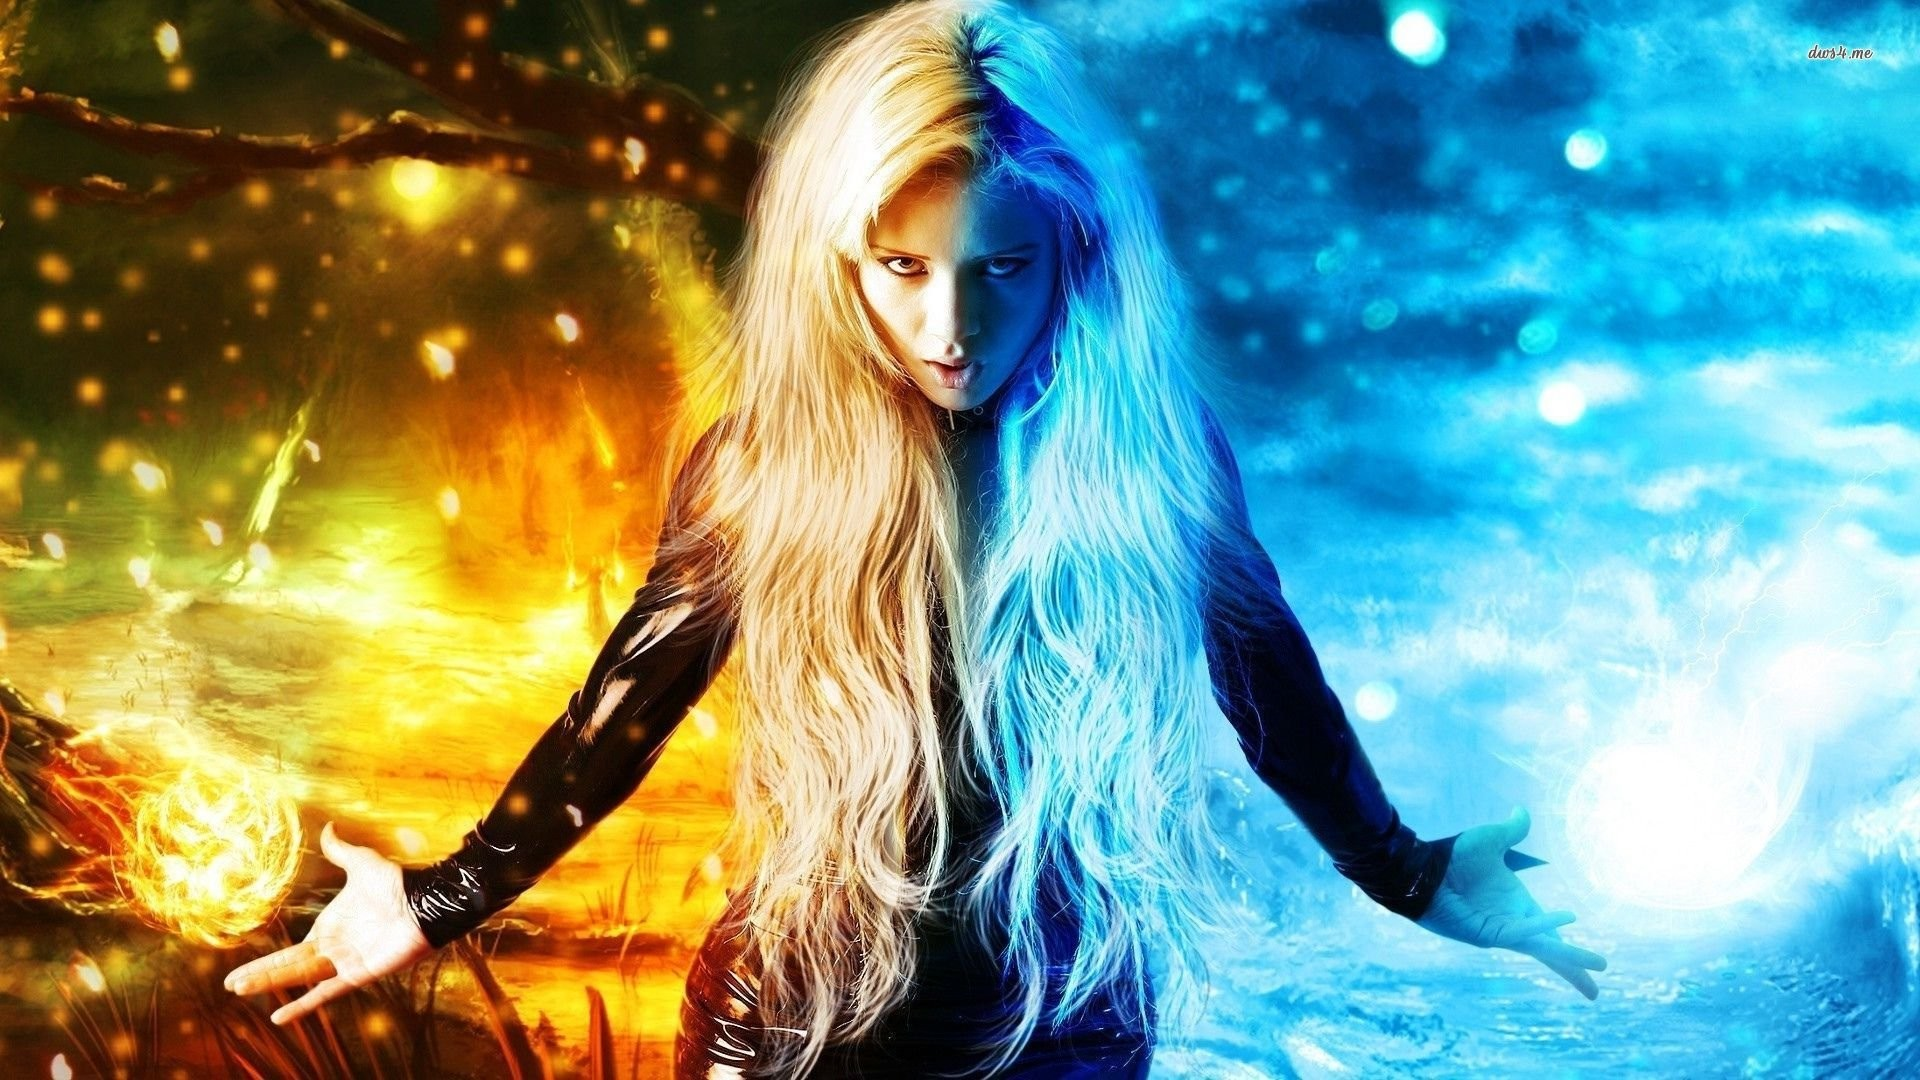 … woman out of fire and ice walldevil …